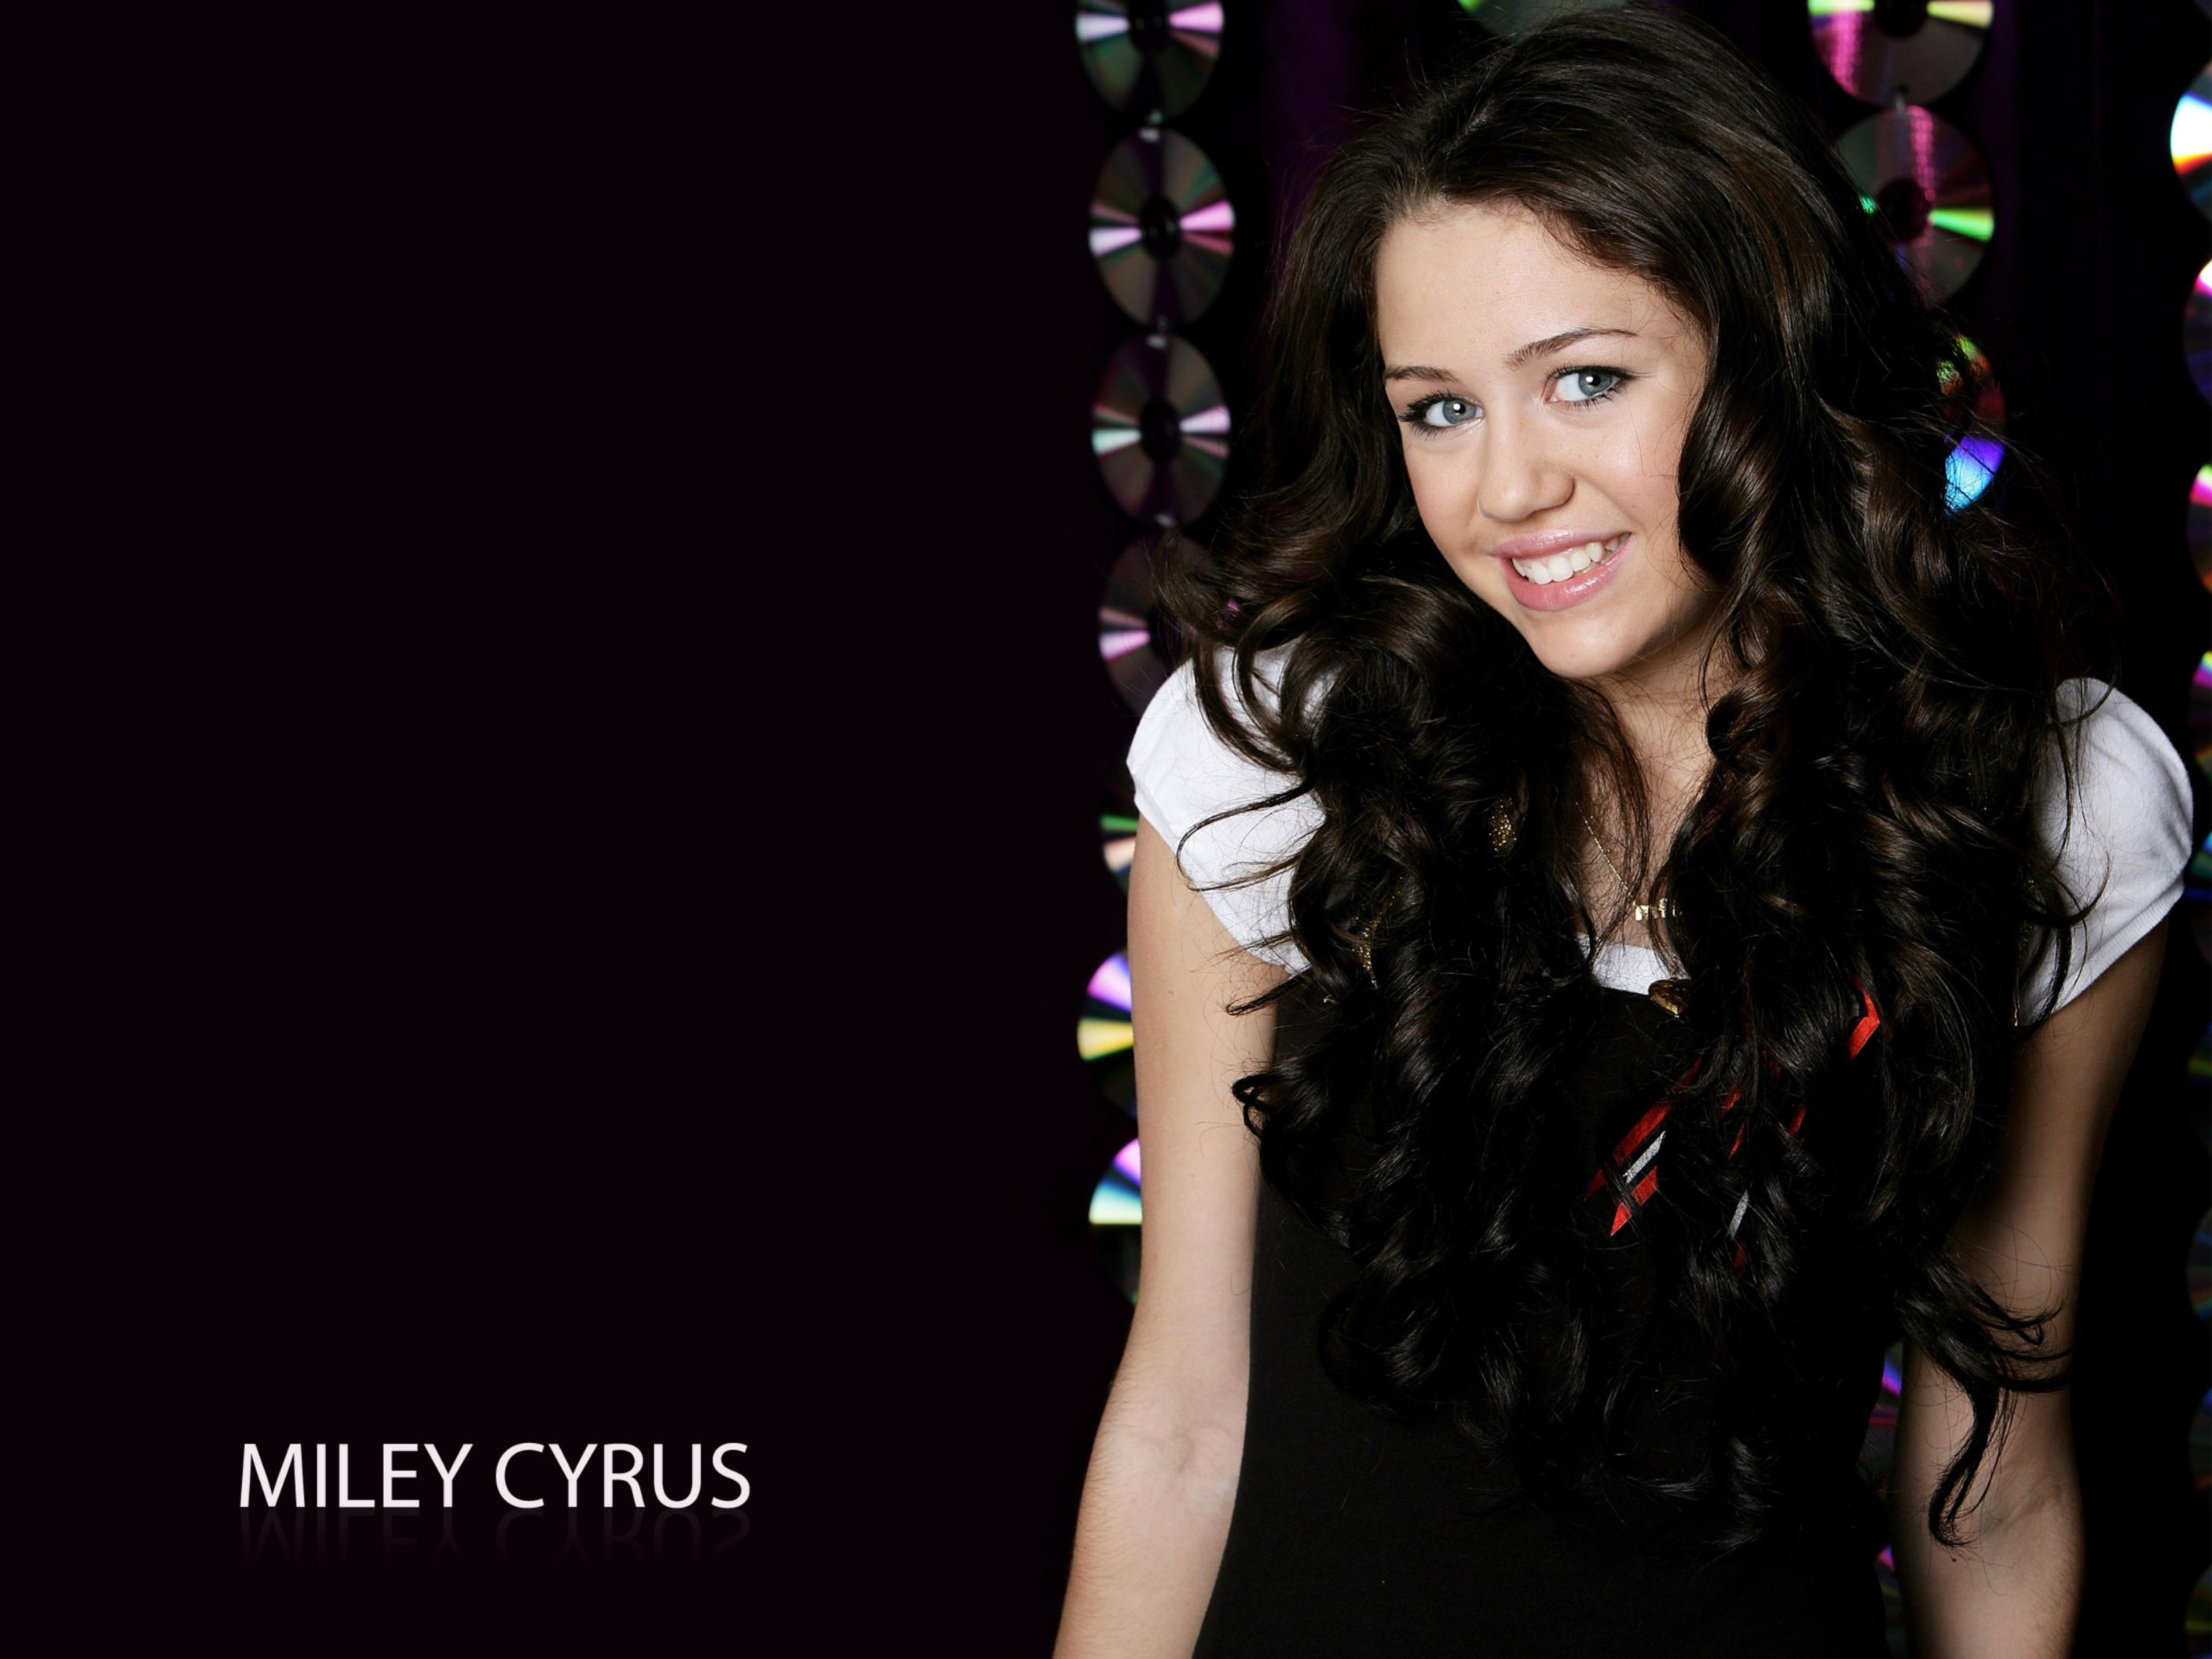 Download free HD Miley Cyrus 27 Normal Wallpaper, image